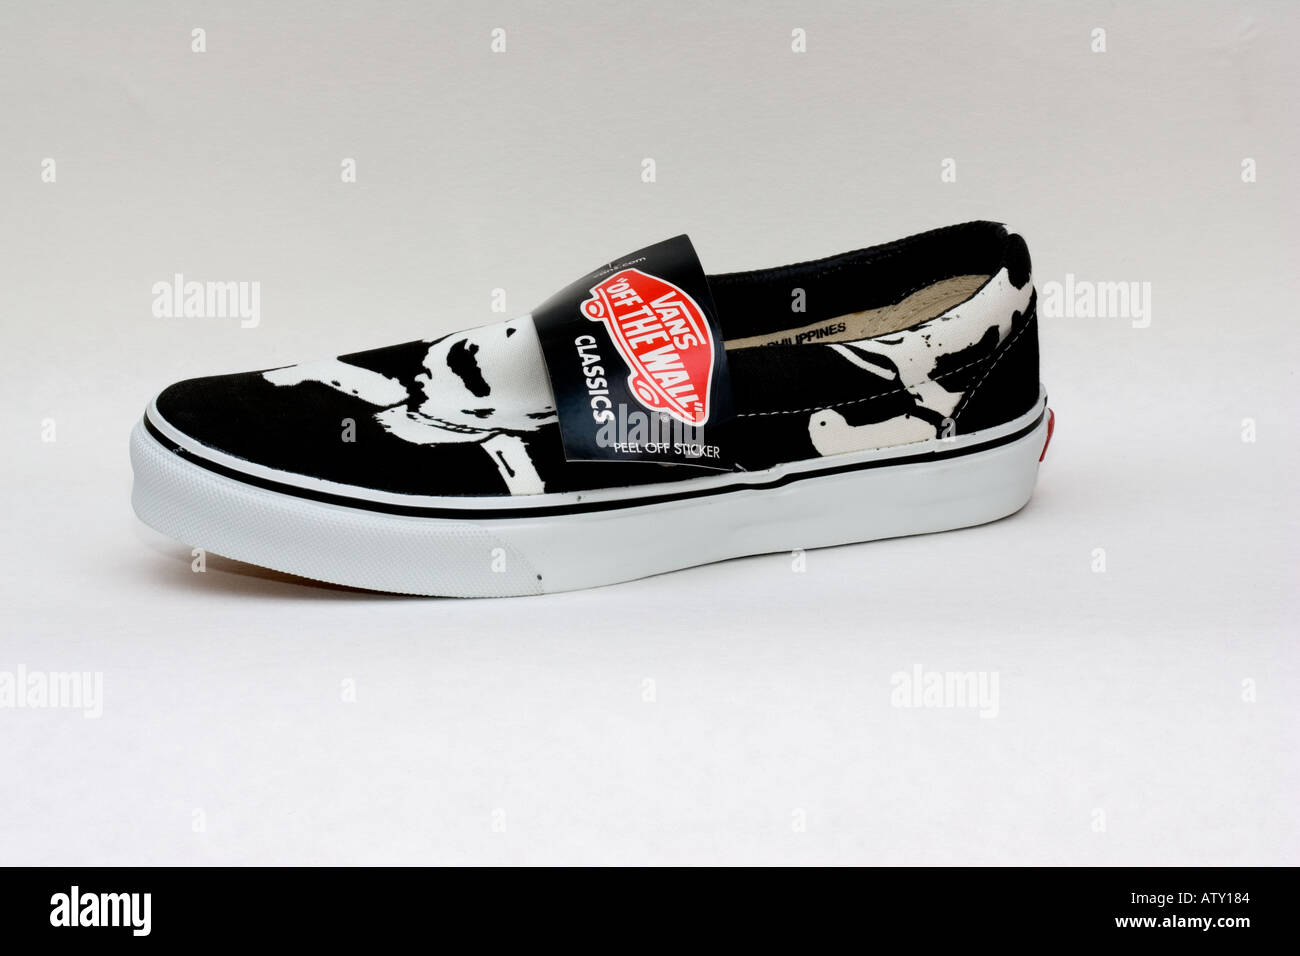 e666066c4e Vans classic slip on surfing shoe Off the wall made in Philippines Big  Skull black and white UK